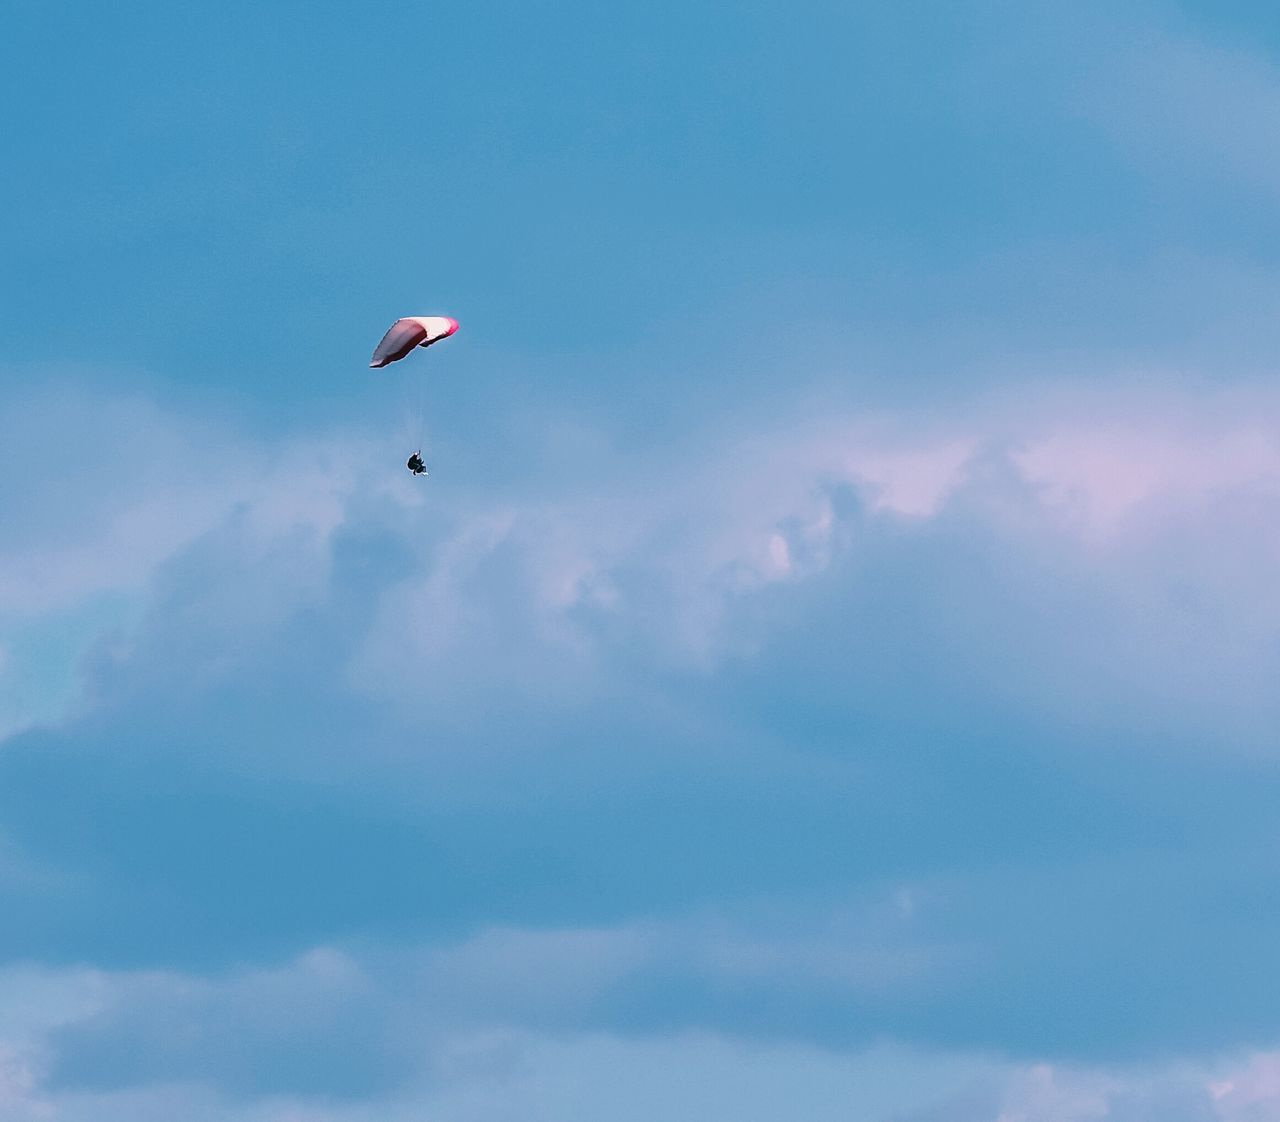 sky, cloud - sky, mid-air, low angle view, parachute, outdoors, nature, adventure, day, beauty in nature, scenics, extreme sports, one person, flying, real people, paragliding